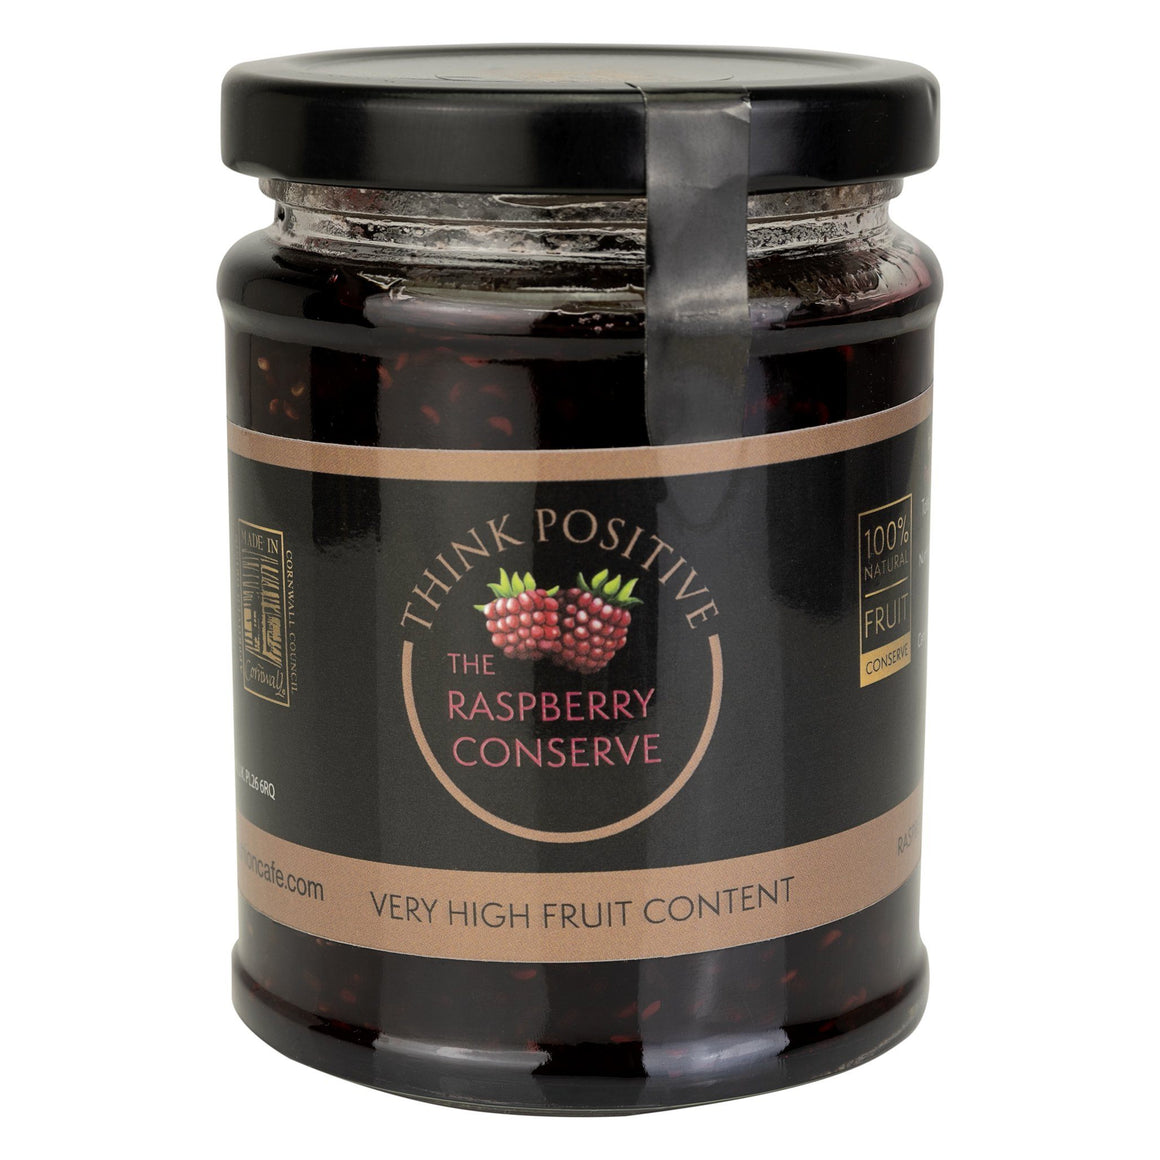 Think Positive Raspberry Conserve